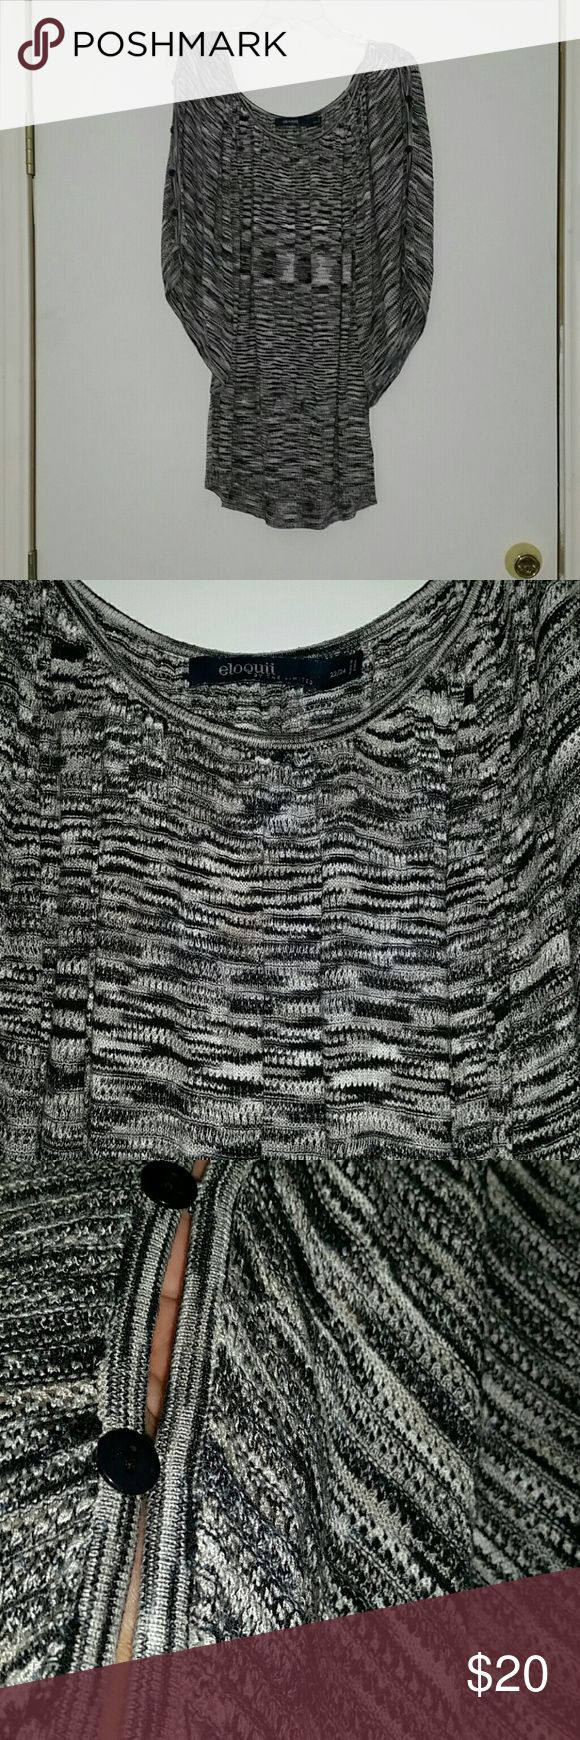 Sz 22/24 knit top by The Limited eloquii In great condition sz 22 24 The Limited top has scoop neck and batwing sleeves. Colors are black, gray white. Peek a boo sleeves with buttons.  Very flattering. The Limited Tops Blouses